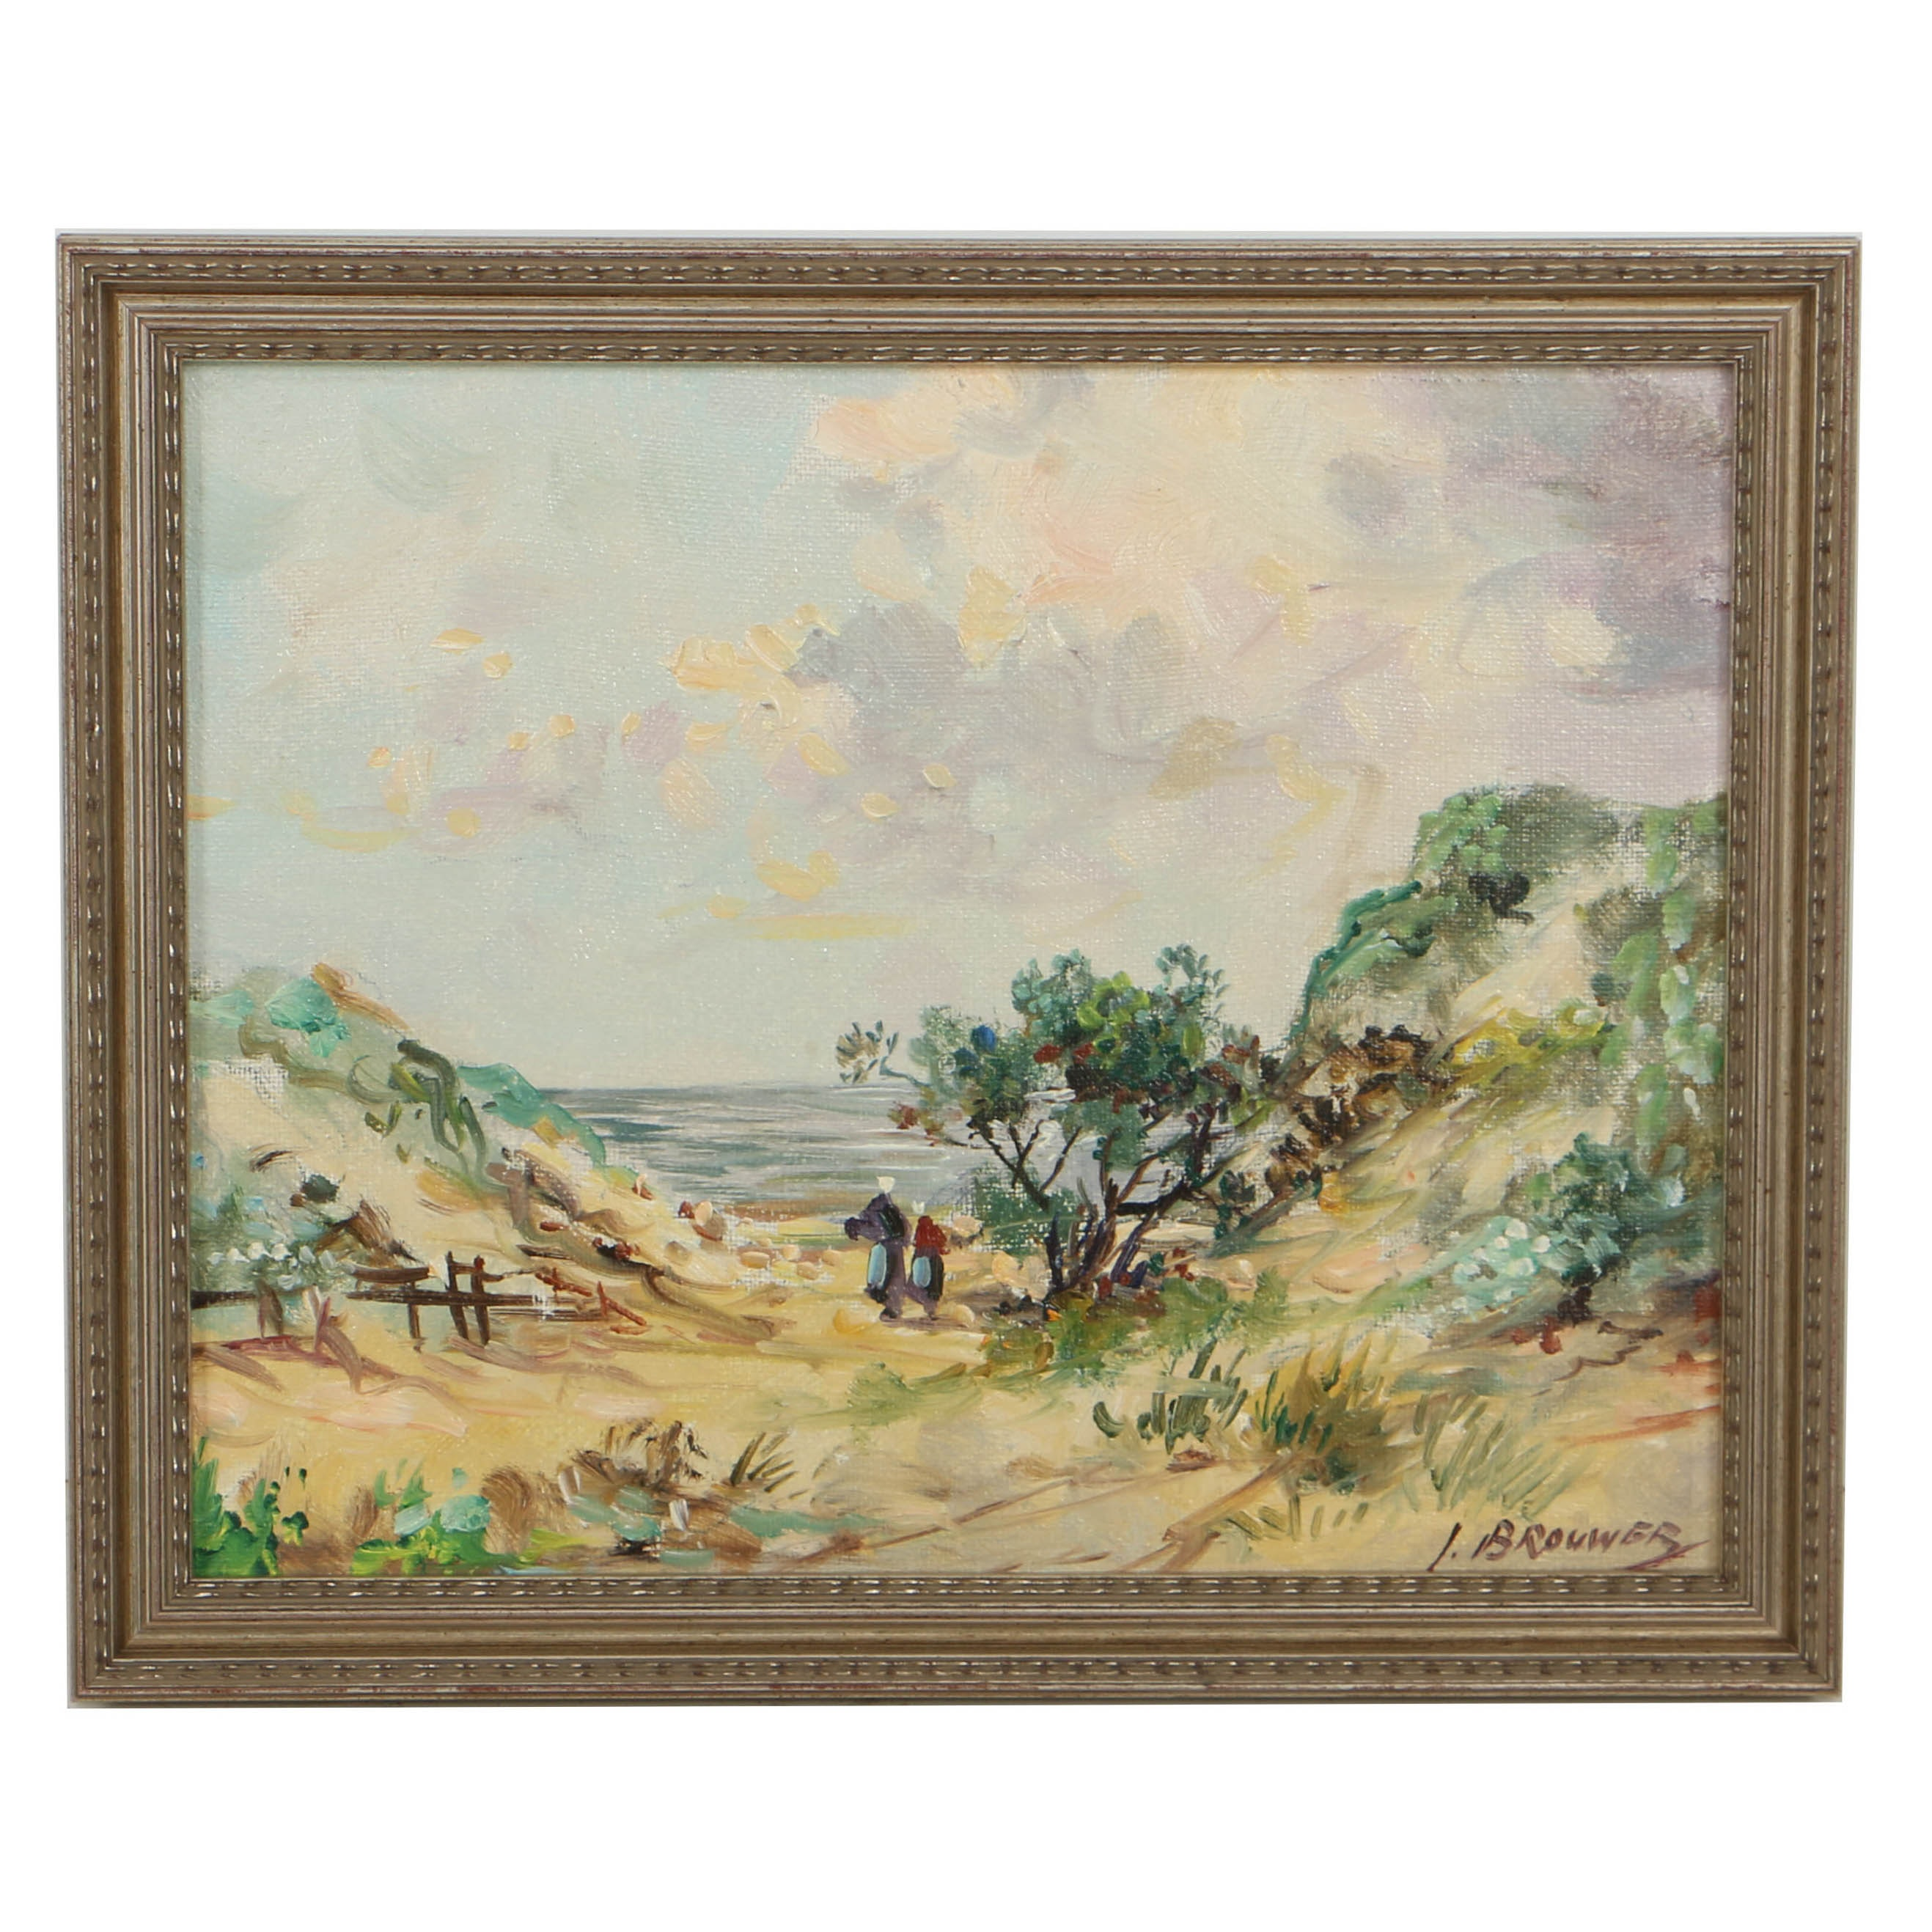 I. Brouwer Oil Painting on Canvas Board of Impressionistic Landscape